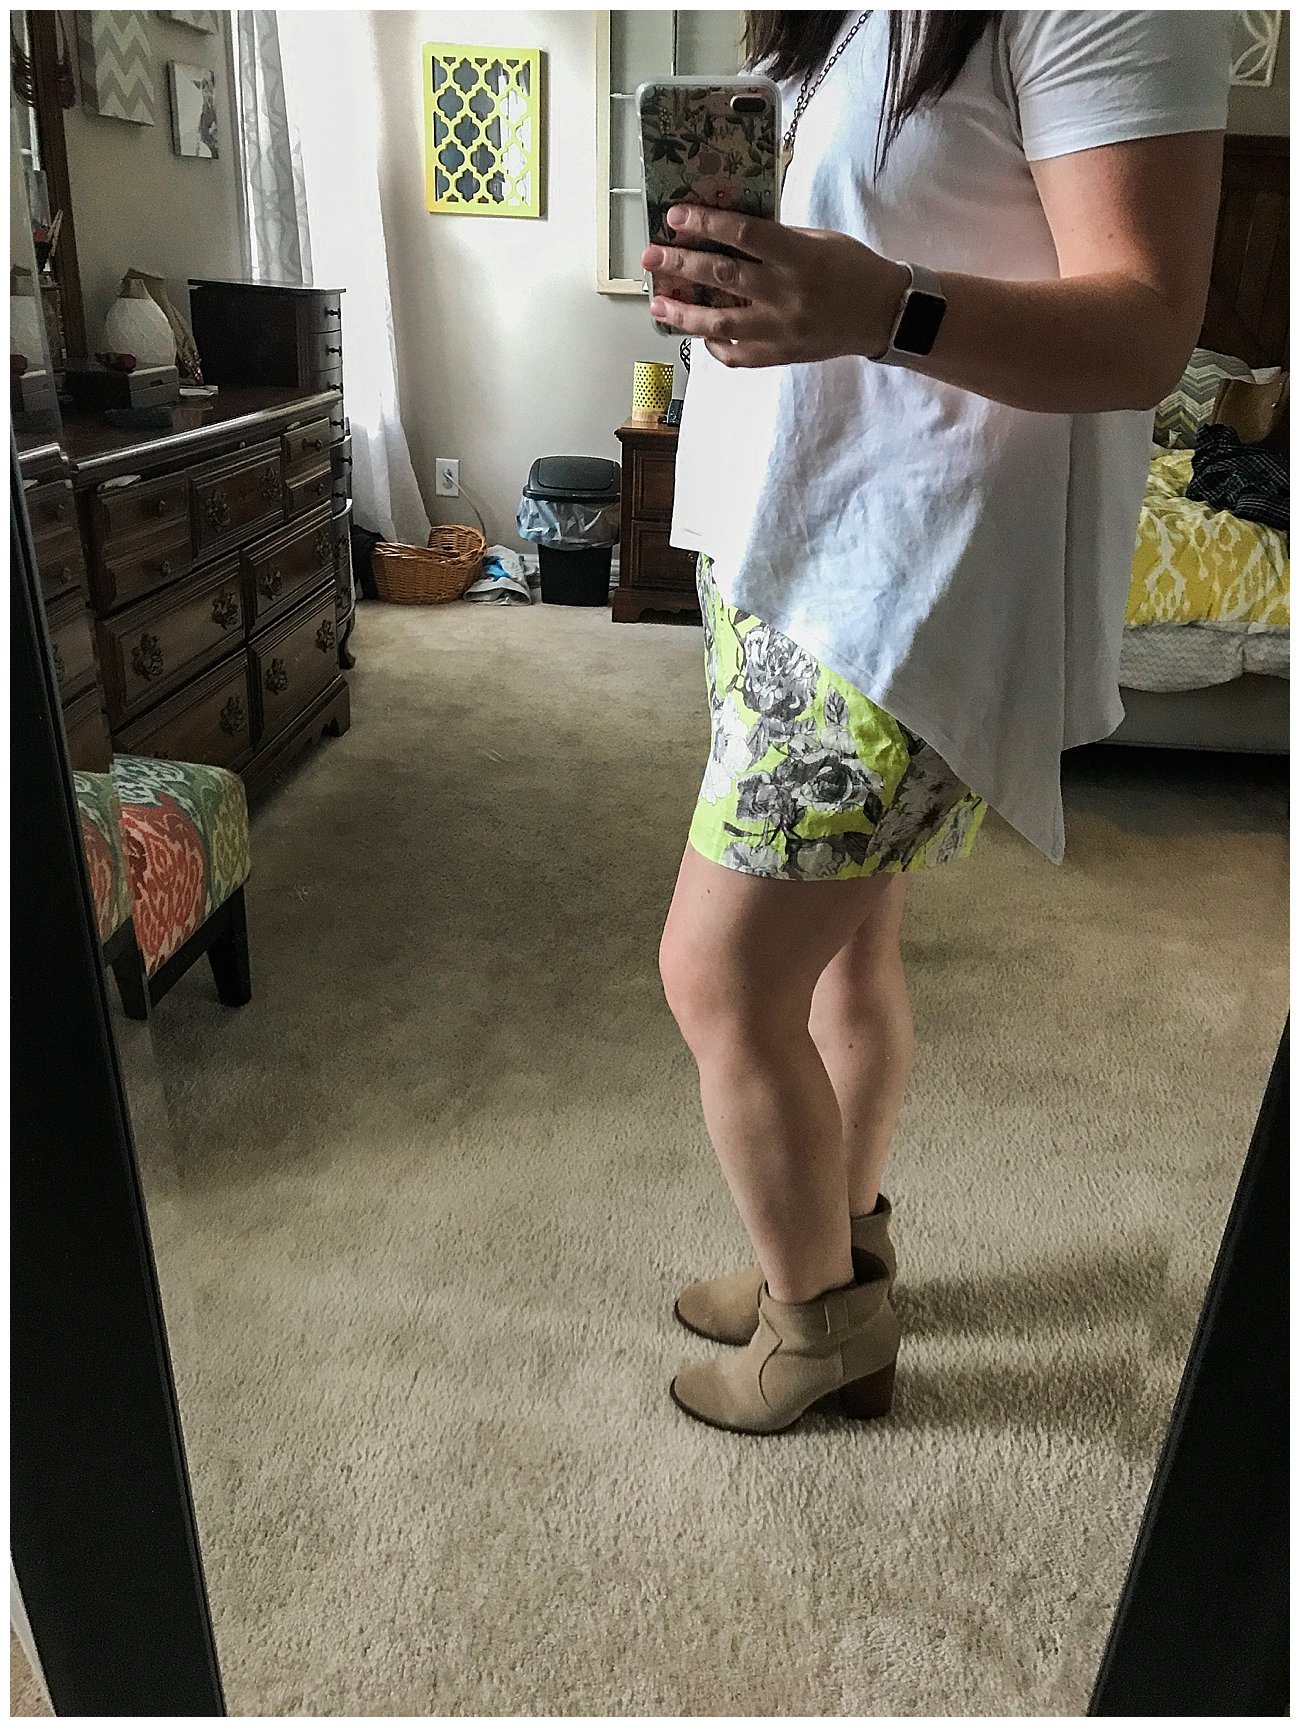 Shorts & Athleticwear Fix - Stitch Fix Review by NC ethical fashion blogger Still Being Molly